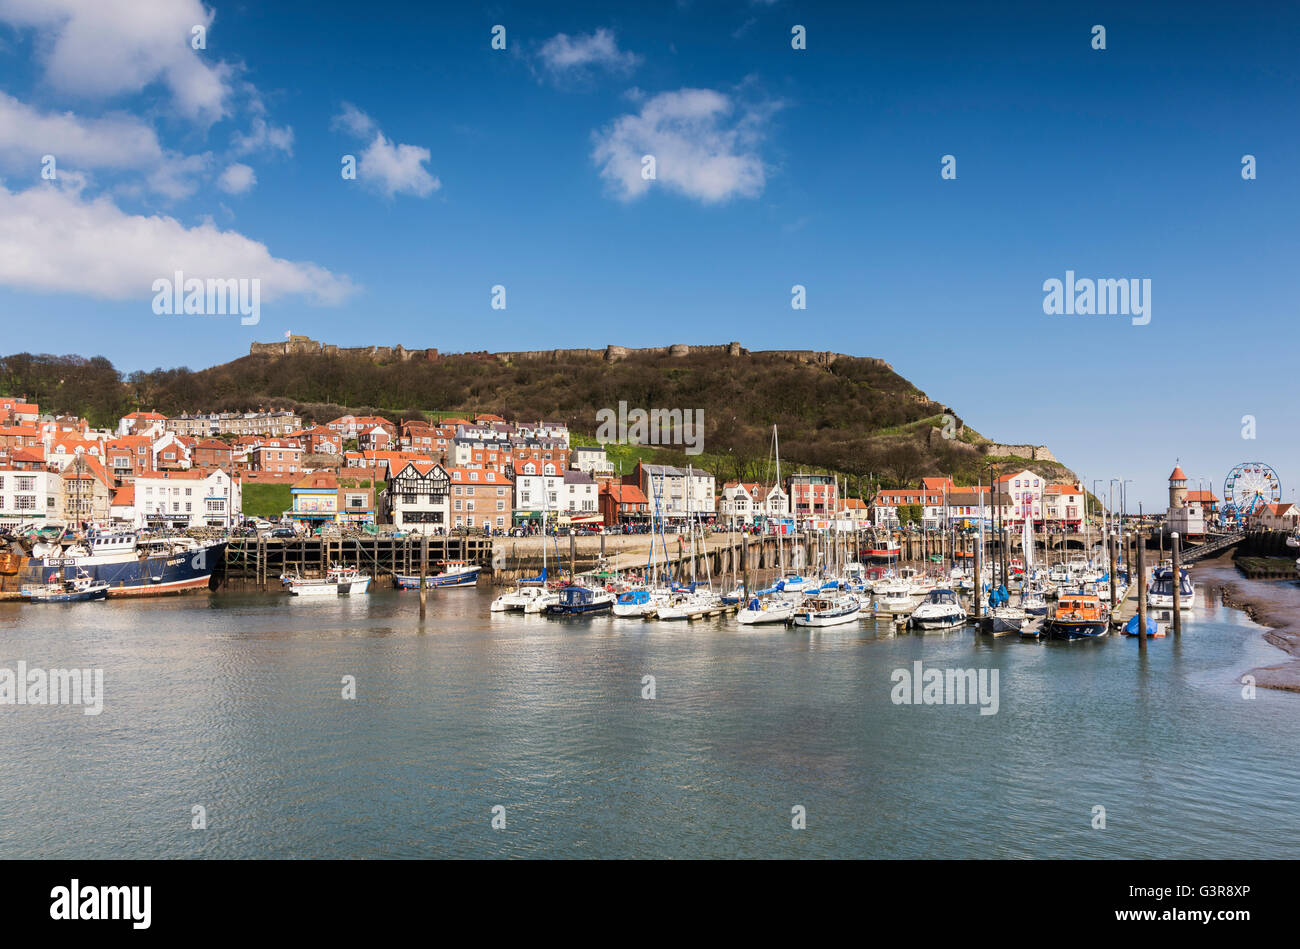 Yachts in the marina in Scarborough harbour - Stock Image